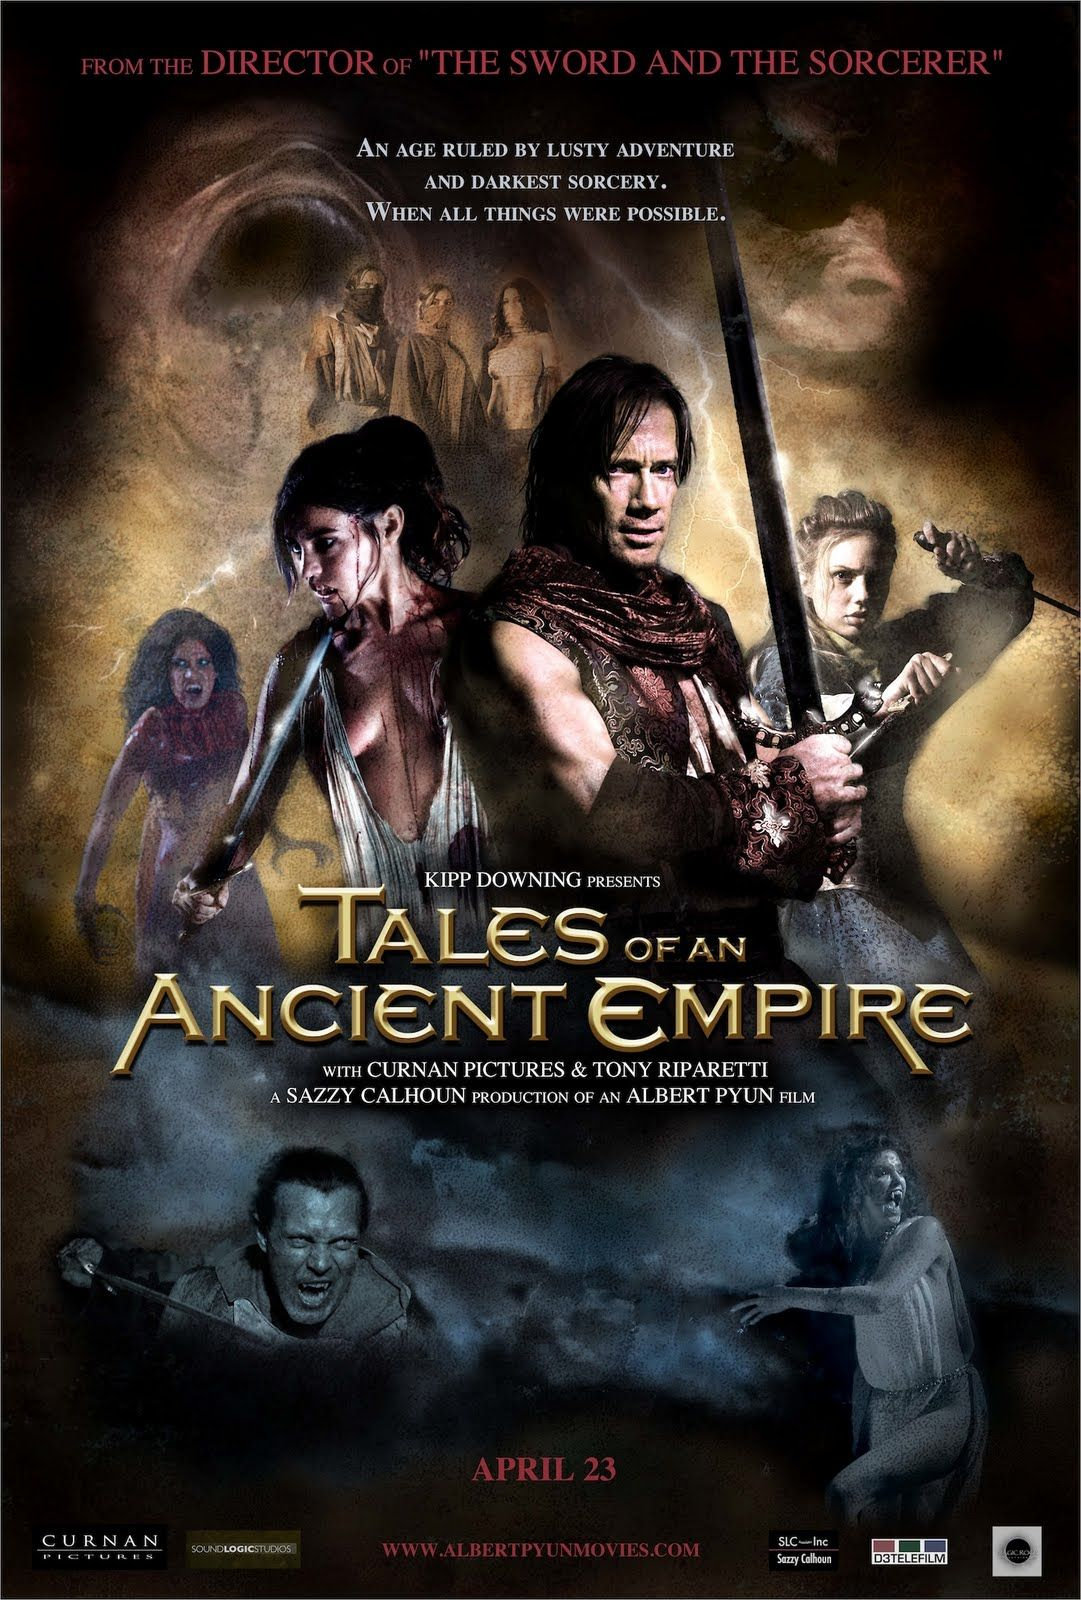 New Tales Of An Ancient Empire Artwork With Images New Movies